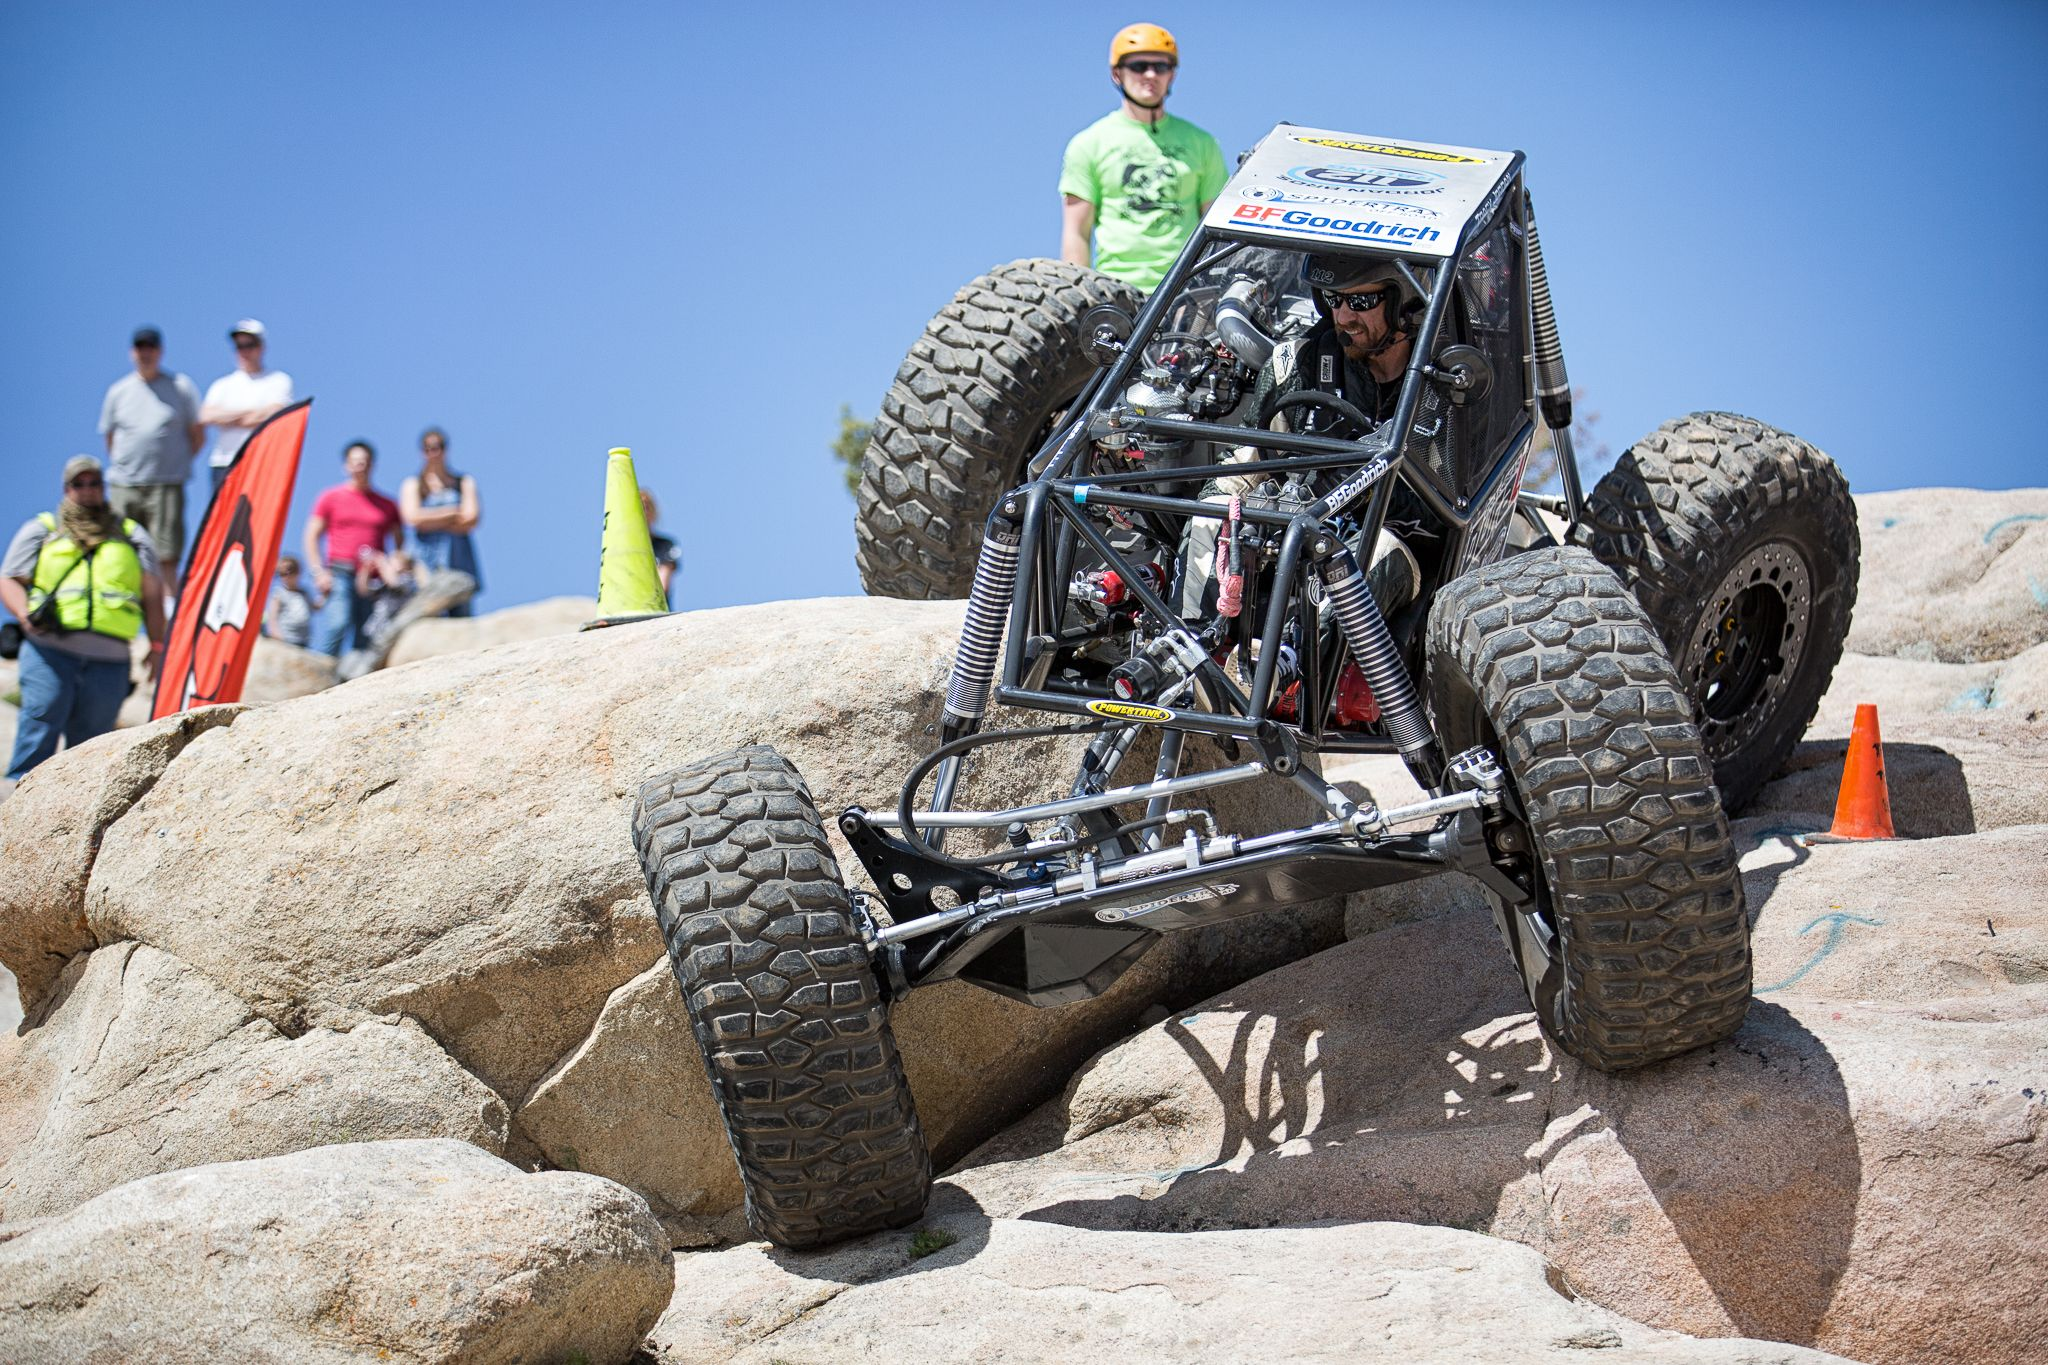 questions for moon buggy builders / owners - Pirate4x4.Com ...